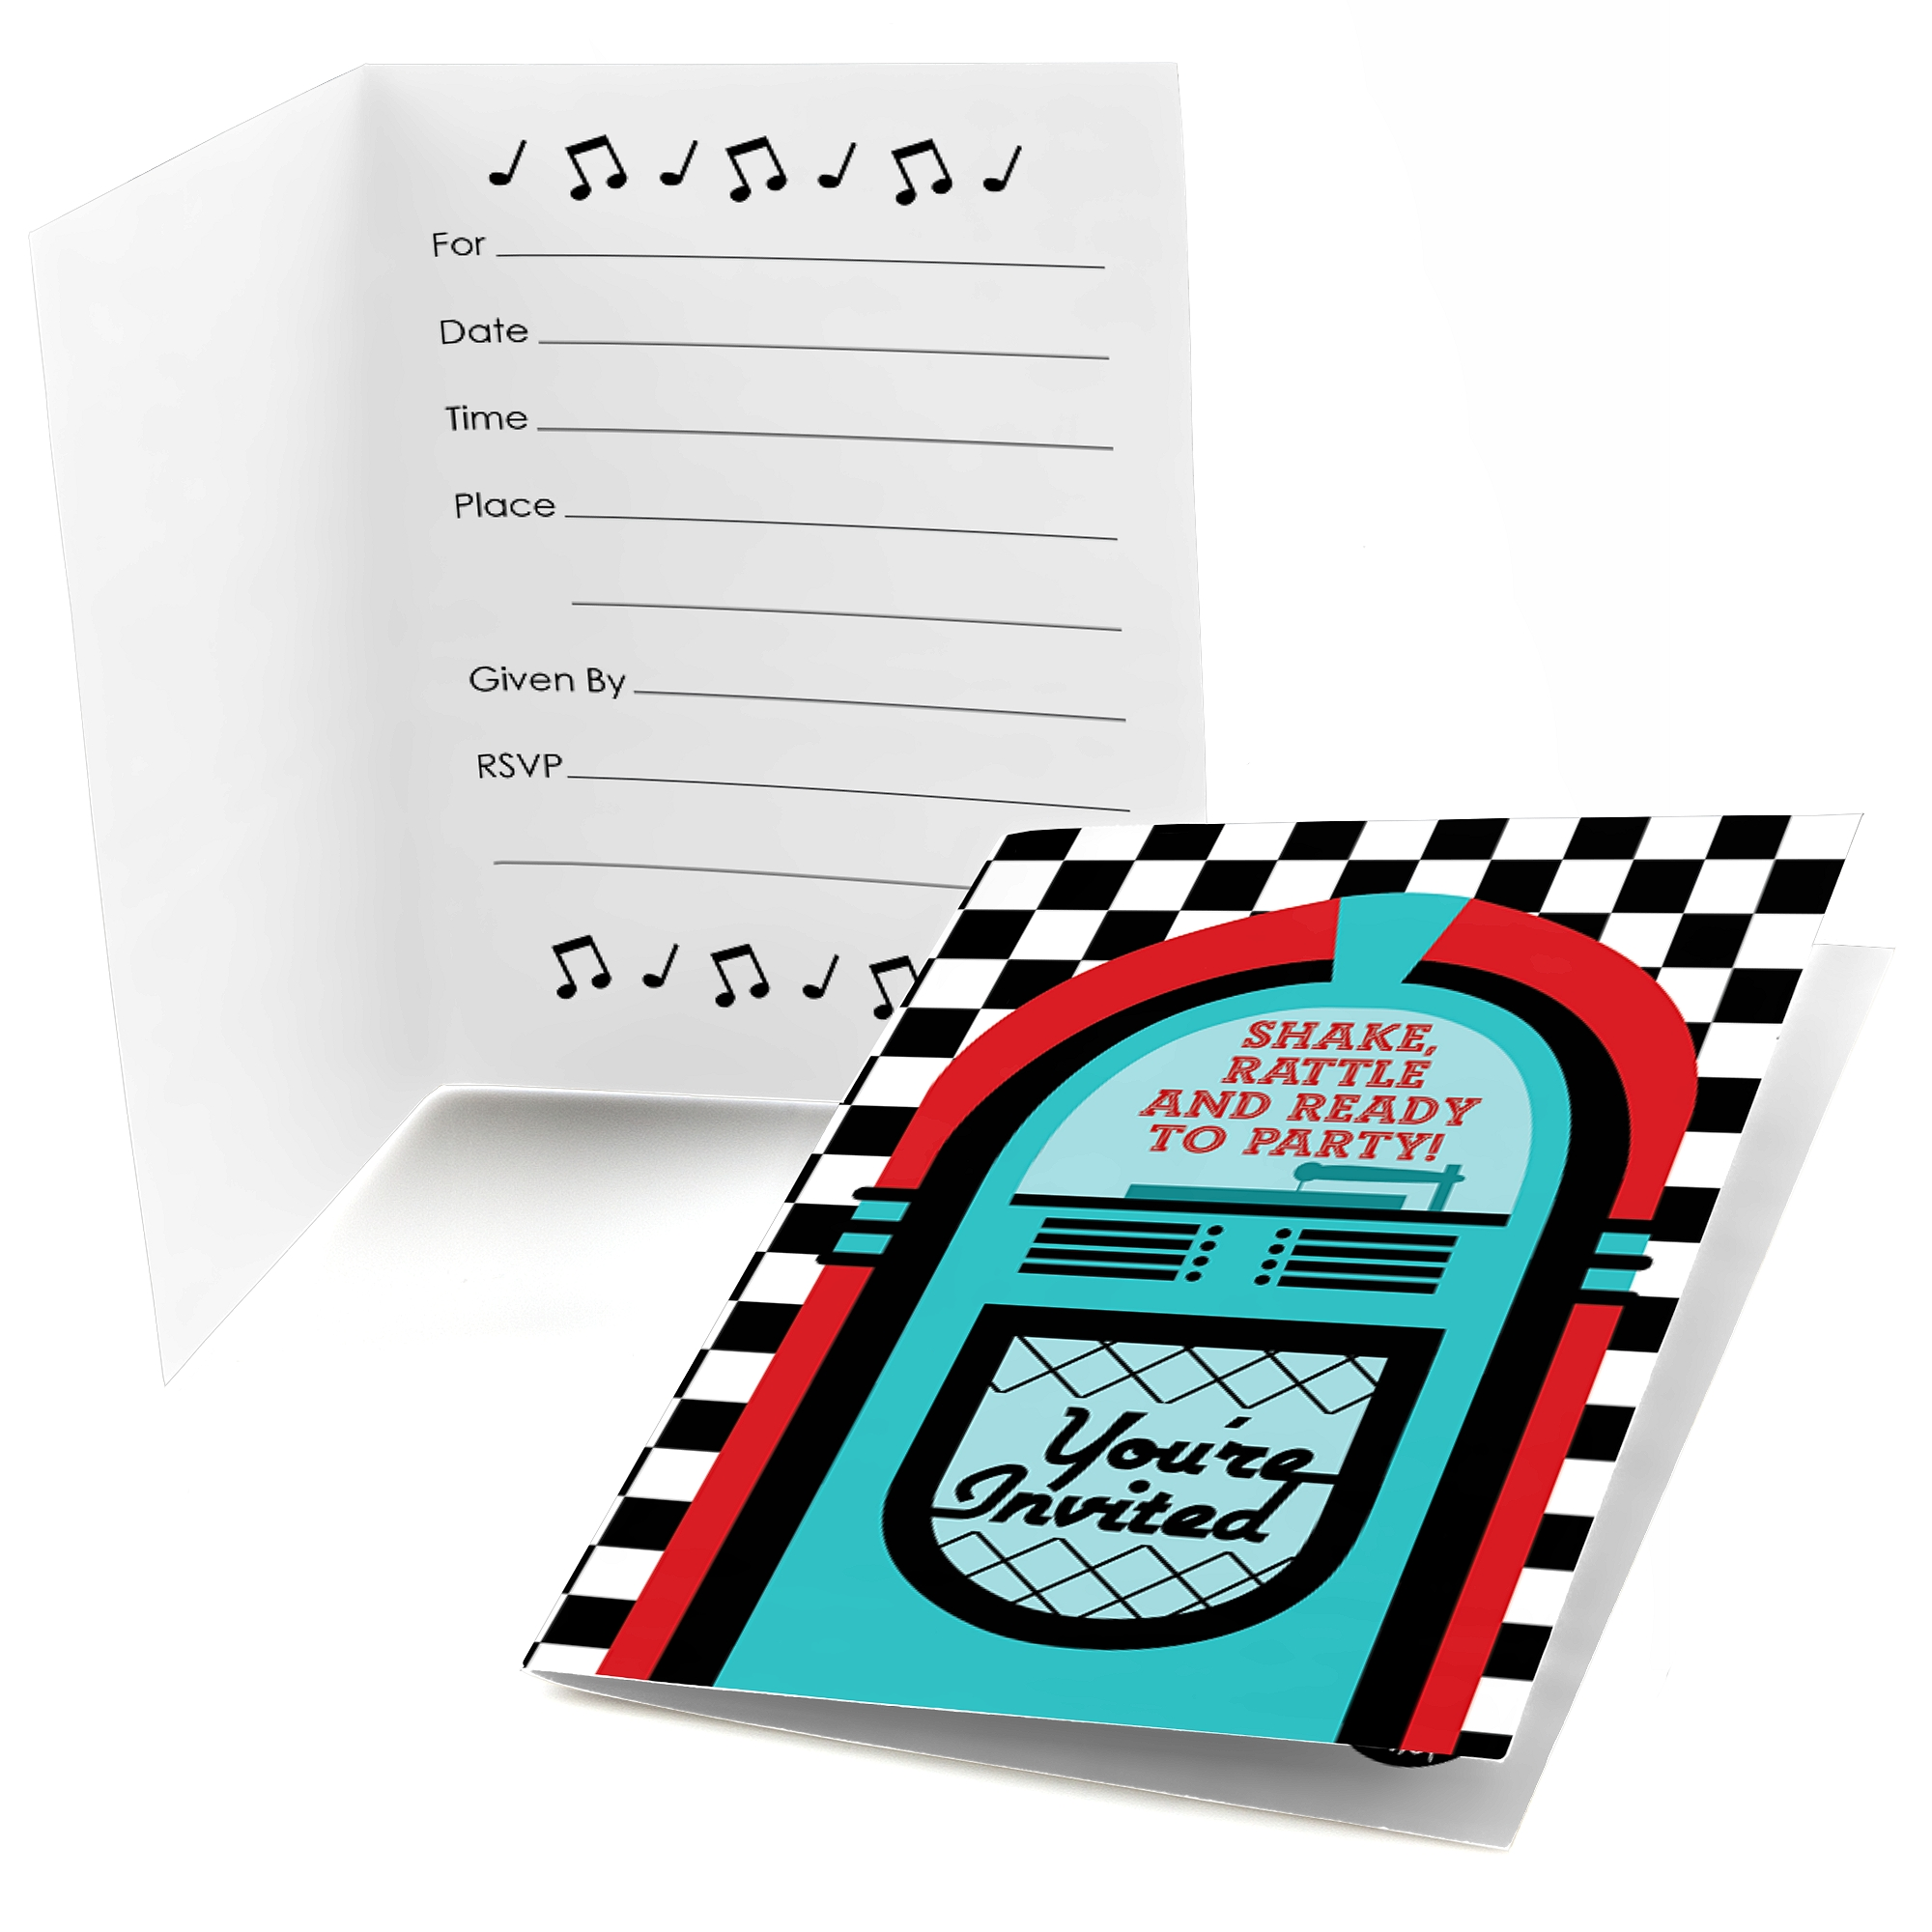 50 S Sock Hop Fill In 1950s Rock N Roll Party Invitations 8 Count